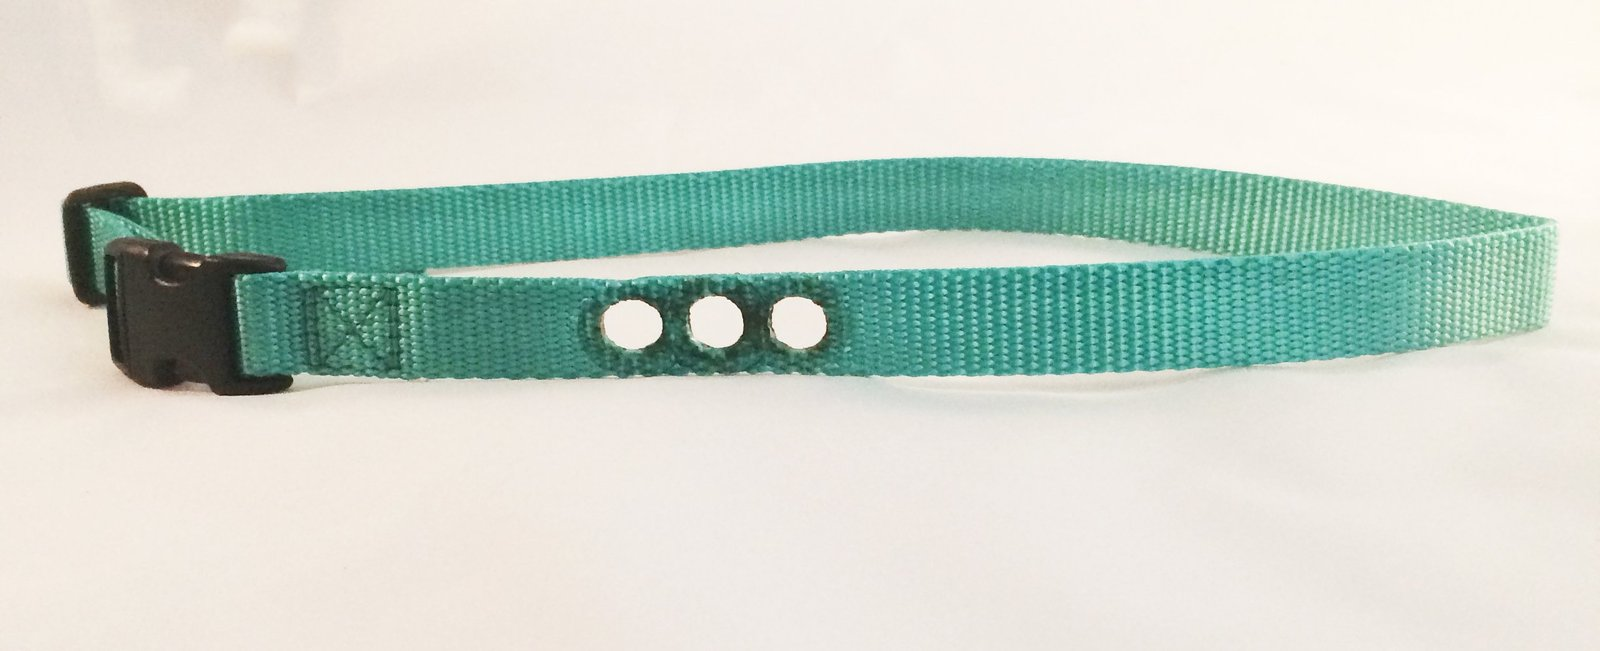 "Sparky PetCo 1"" PetSafe Compatible Replacement 3 Hole Dog Bark Collar, Teal"